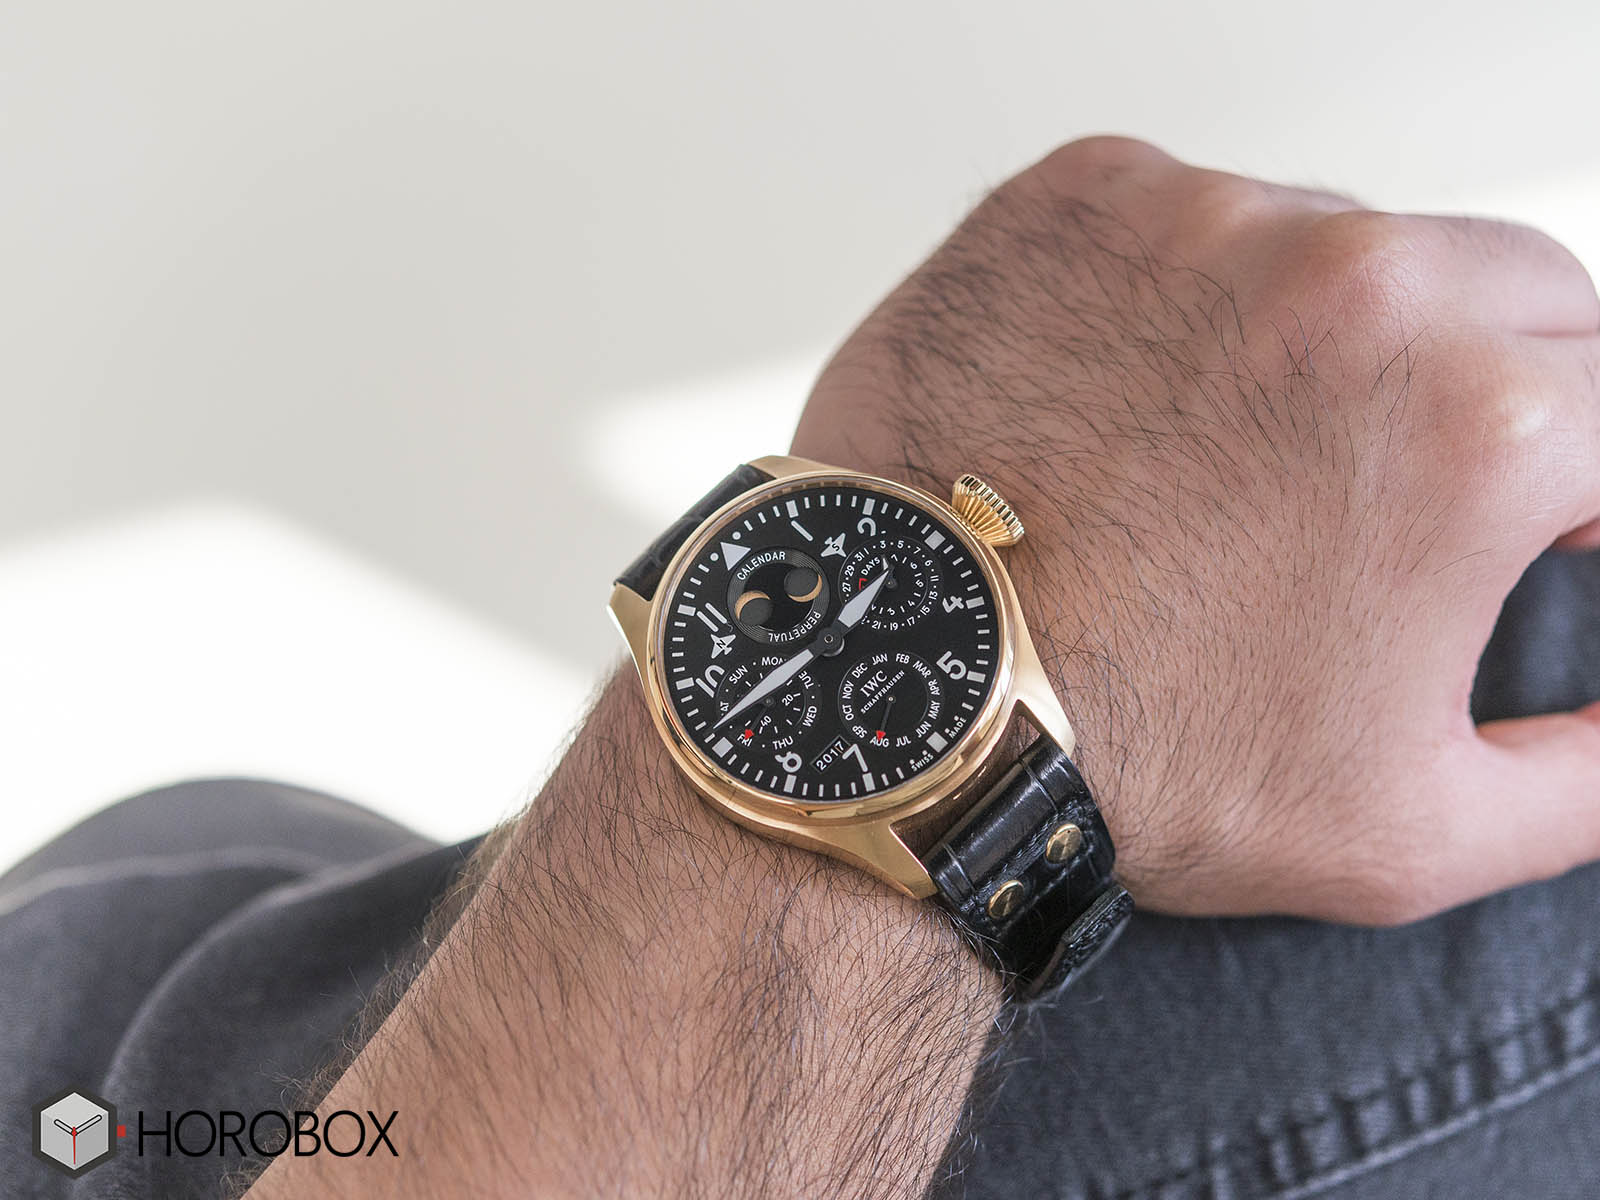 iwc-big-pilot-perpetual-calendar-18k-red-gold-limited-edition-iw502628-11.jpg